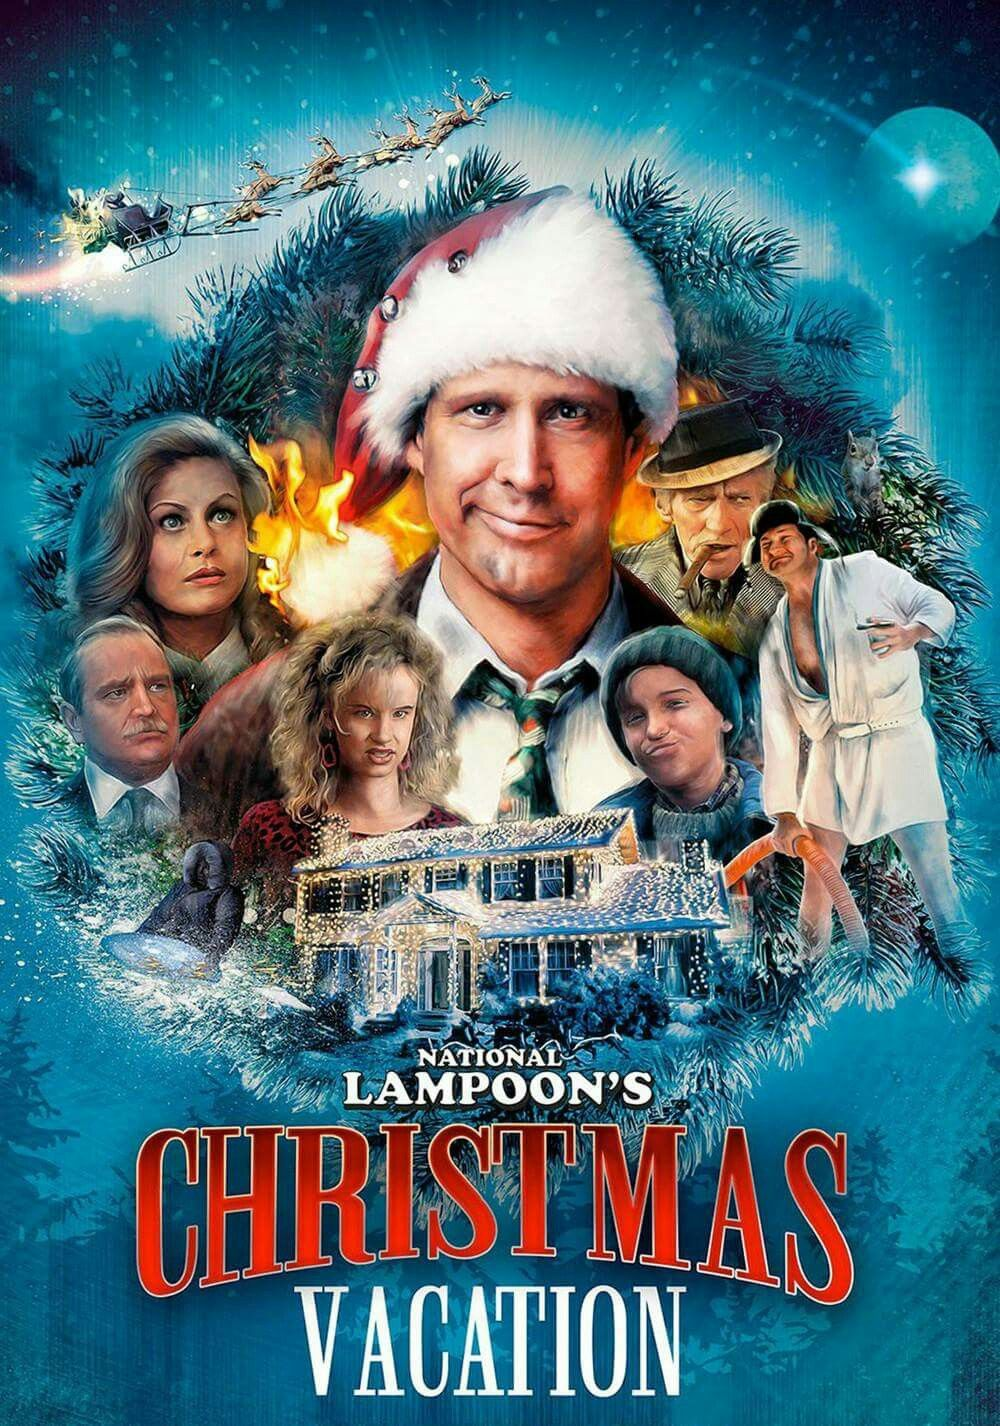 National Lampoons Christmas Vacation National Lampoons Christmas Vacation Movie Christmas Vacation Movie Vacation Movie